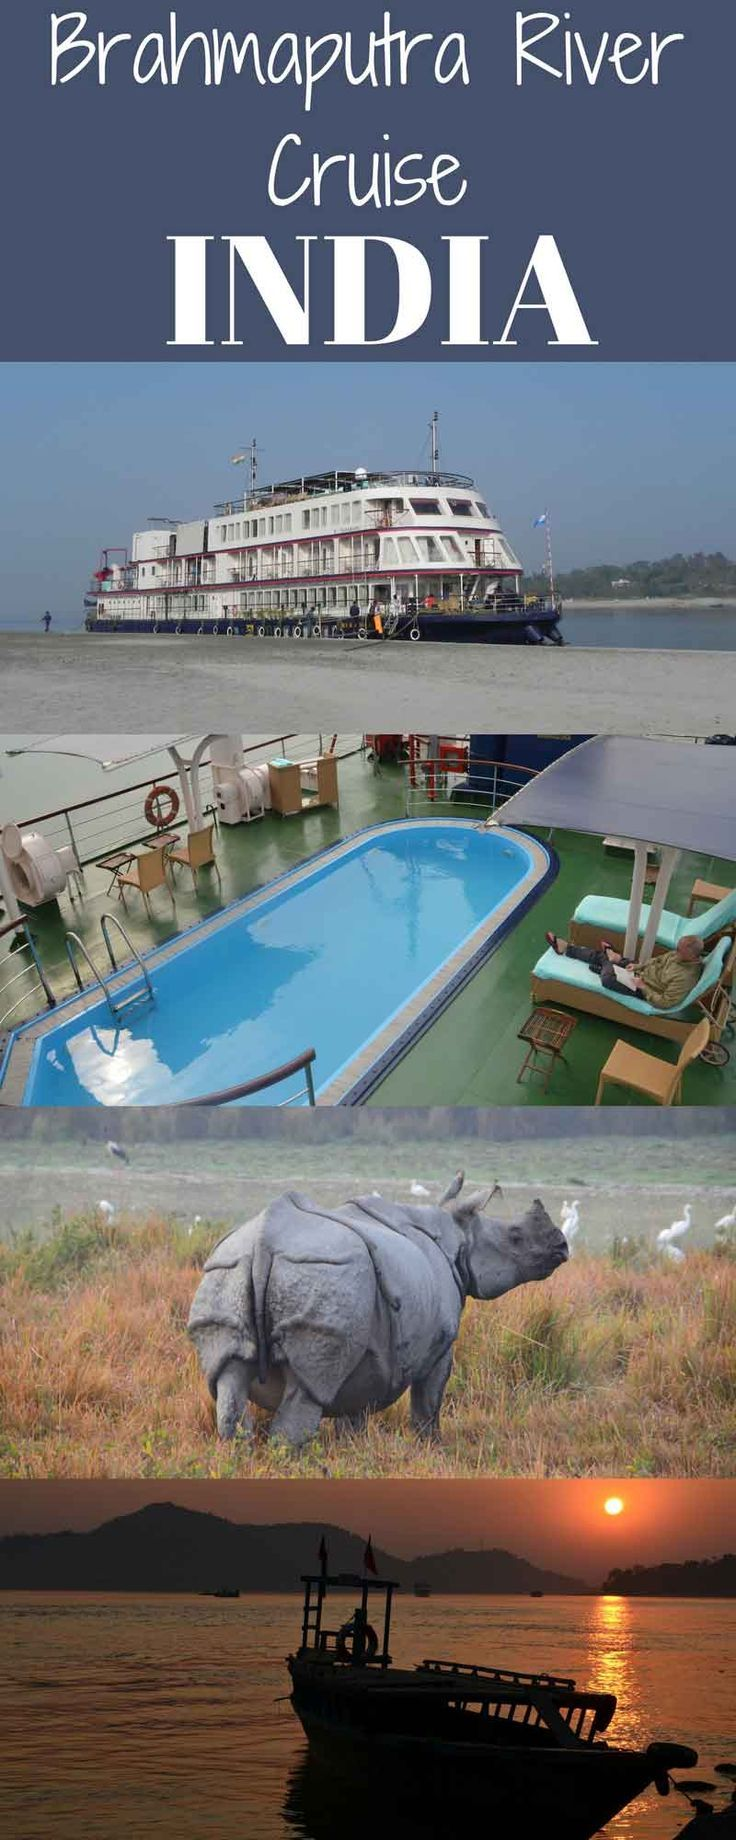 Brahmaputra River Cruise in Assam India https://travel2next.com/brahmaputra-river-cruise-assam-india/?utm_campaign=coschedule&utm_source=pinterest&utm_medium=Travel%202%20Next&utm_content=Brahmaputra%20River%20Cruise%20in%20Assam%20India